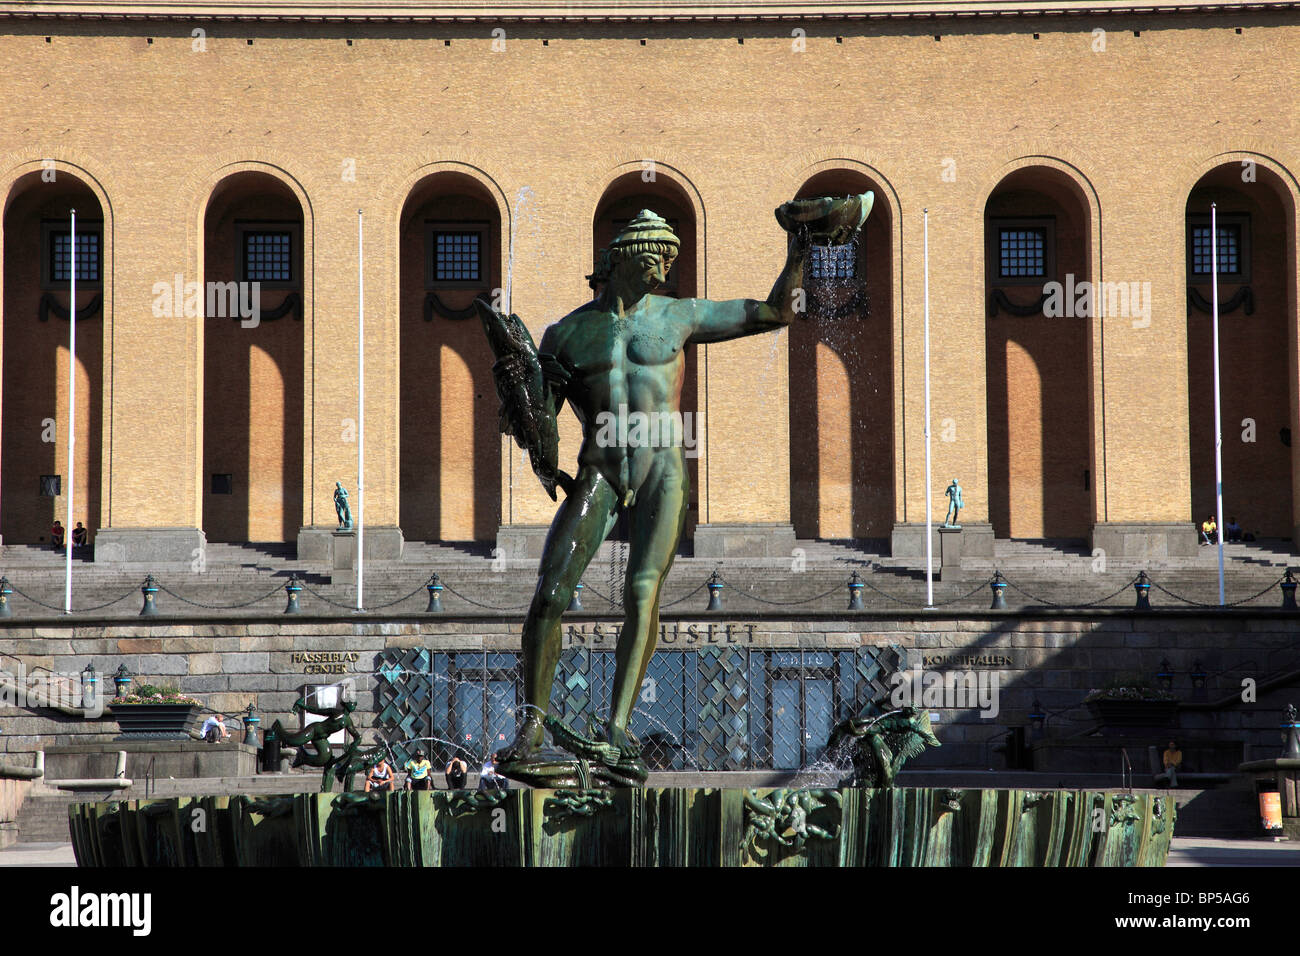 Sweden, Göteborg, Gothenburg, Poseidon statue, Art Museum, - Stock Image